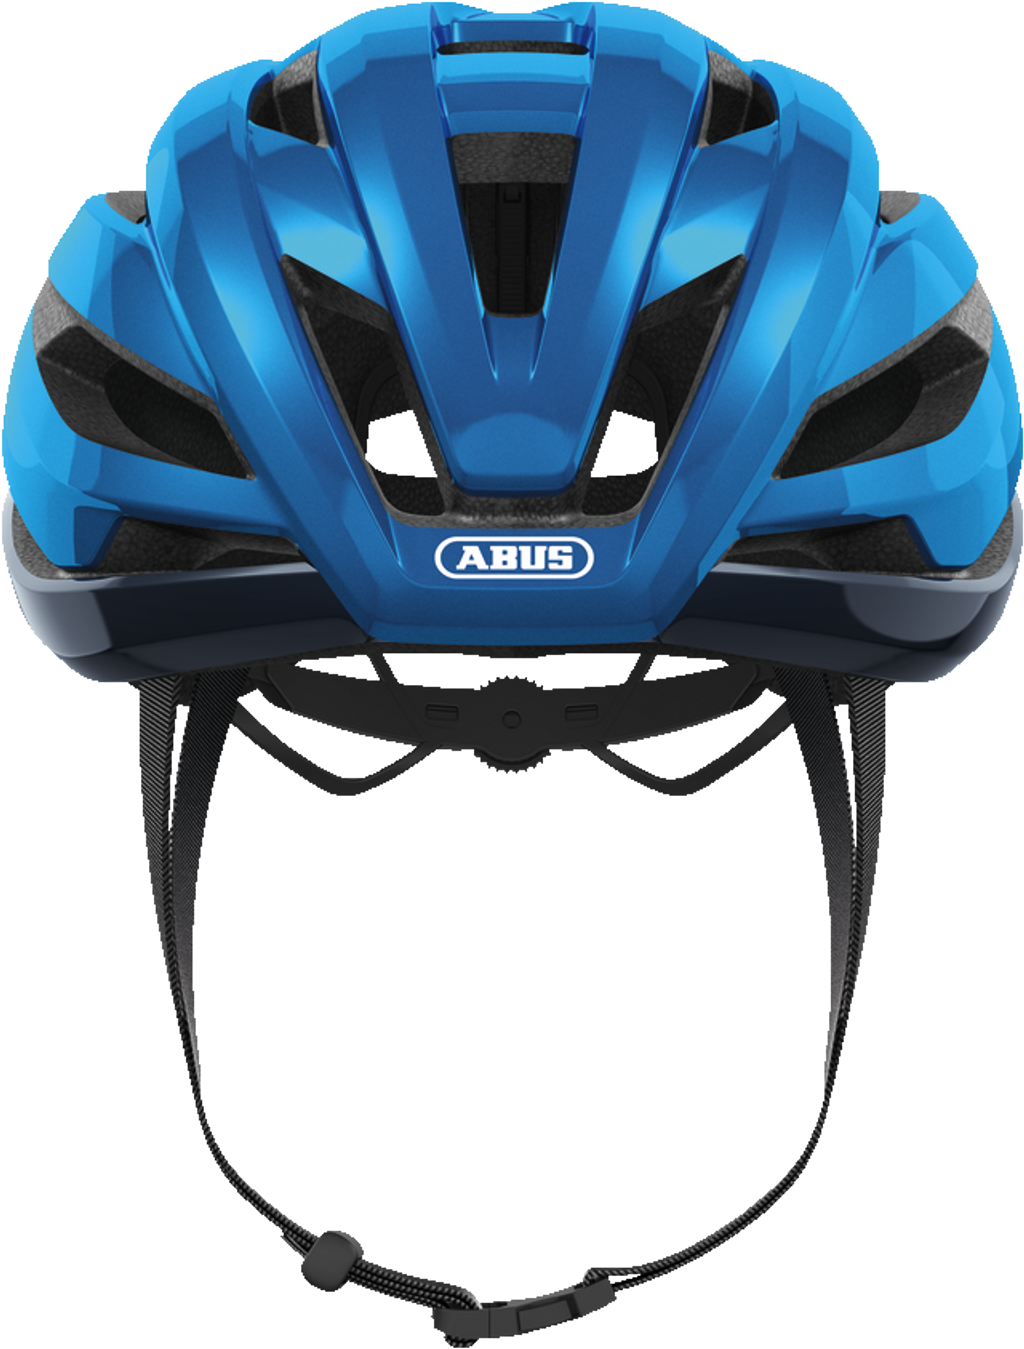 87201_StormChaser_steel_blue_front_abus_640.png